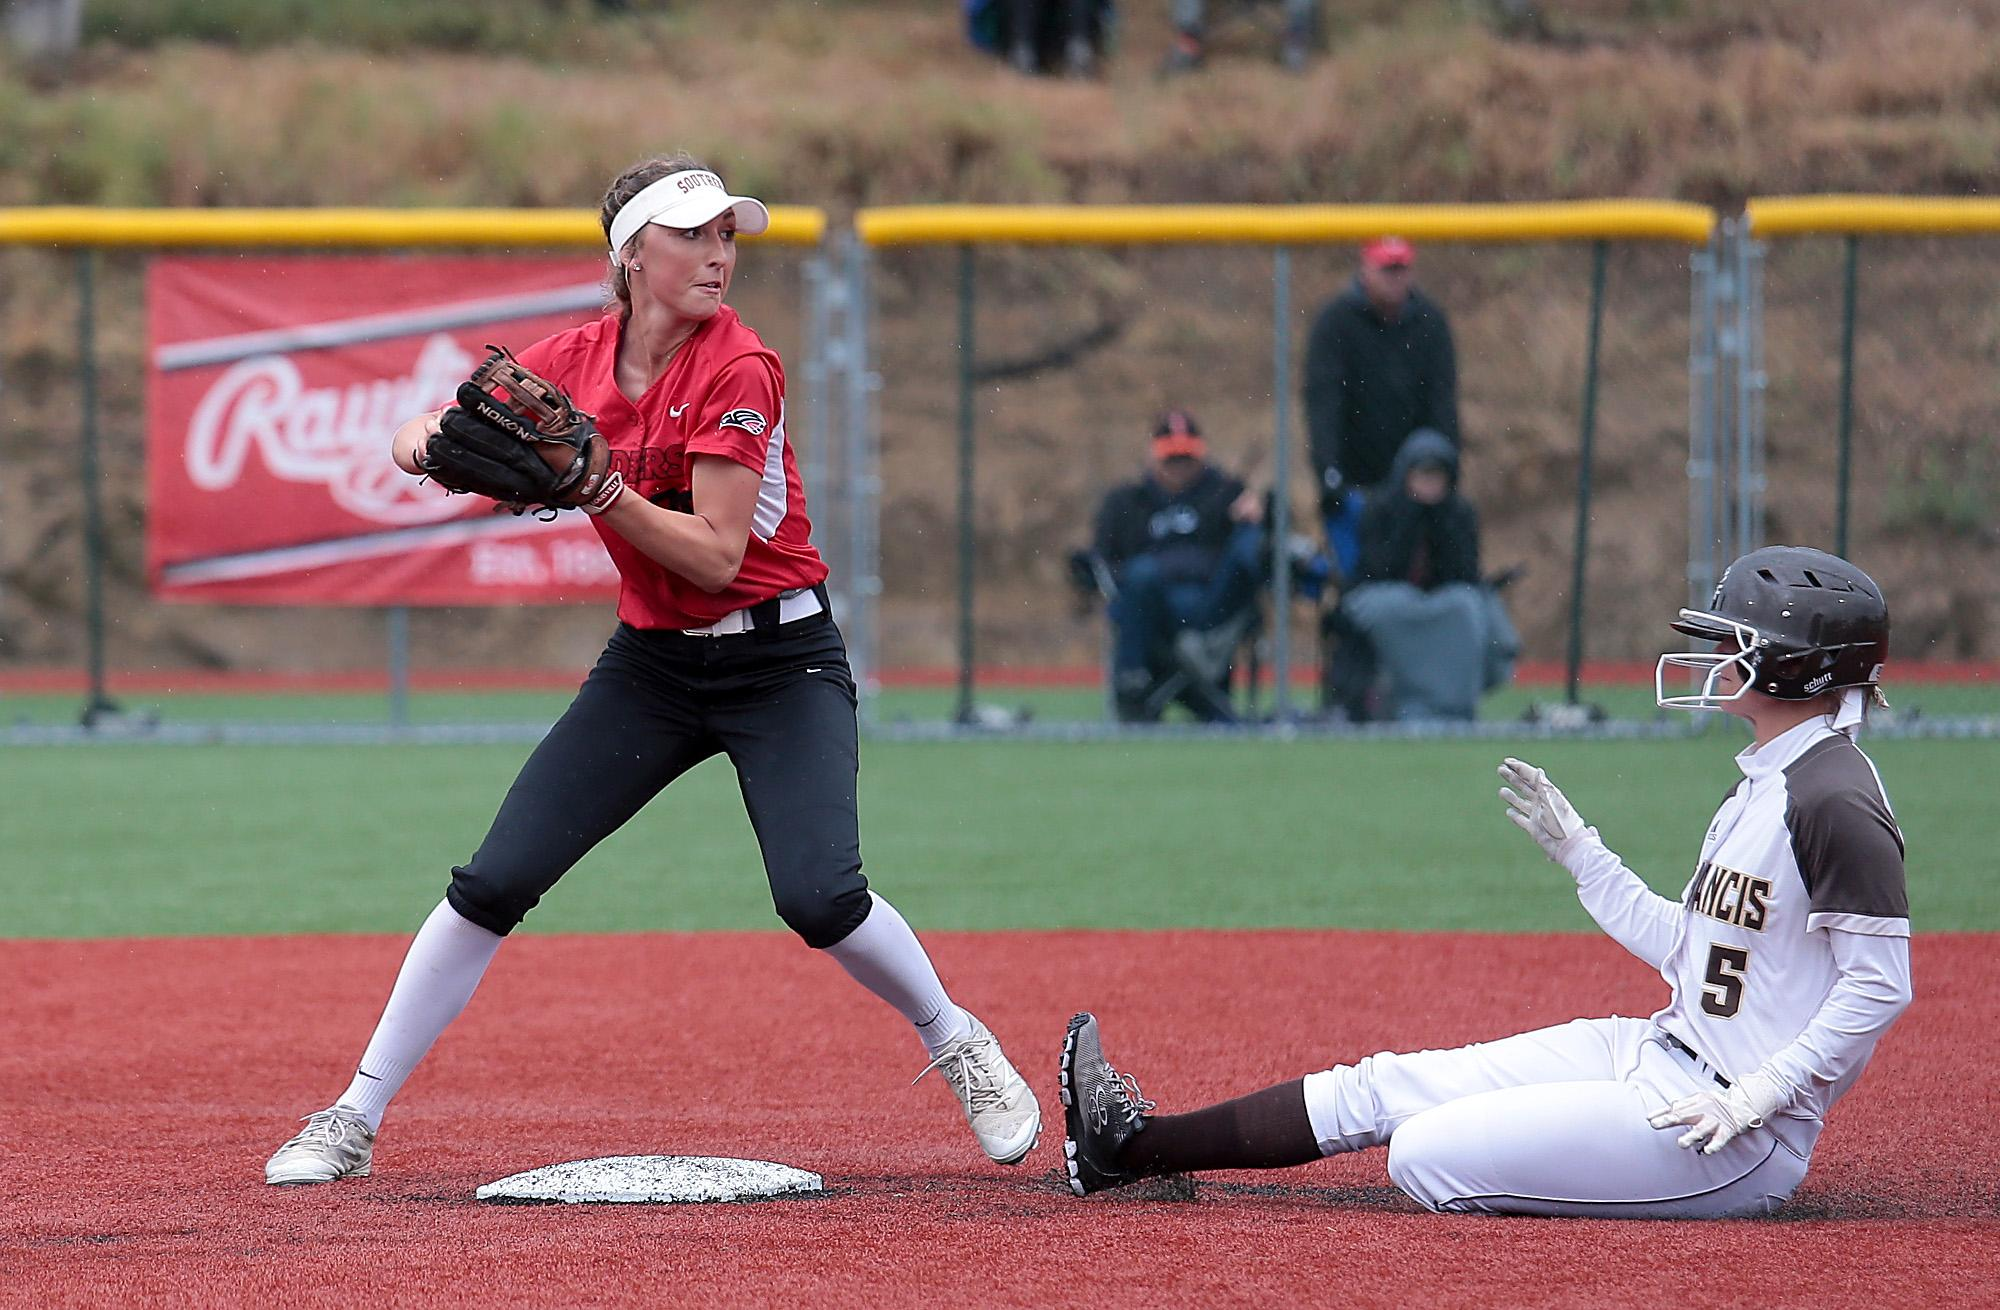 Southern Oregon University freshman Hannah Shimek looks to turn the double play over St. Francis baserunner Anna Wetherell at US Cellular Community Park on Wednesday.[PHOTO BY:  LARRY STAUTH JR]